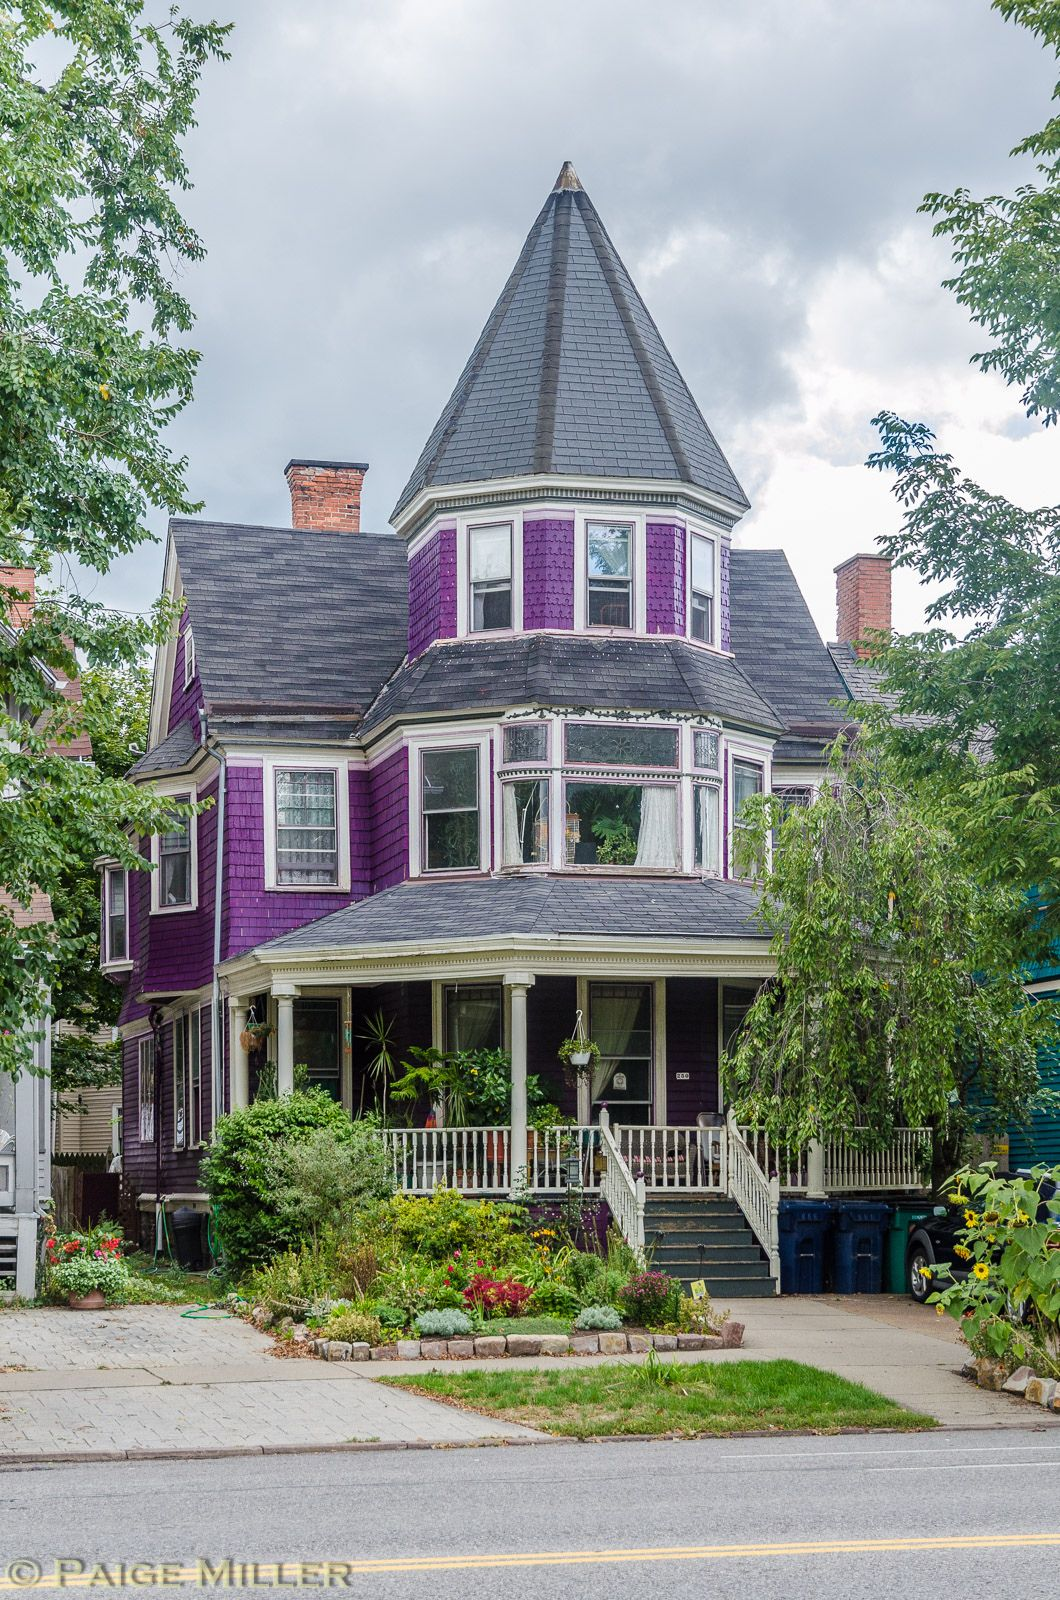 Buffalo Ny In 2020 Victorian Homes Victorian Architecture